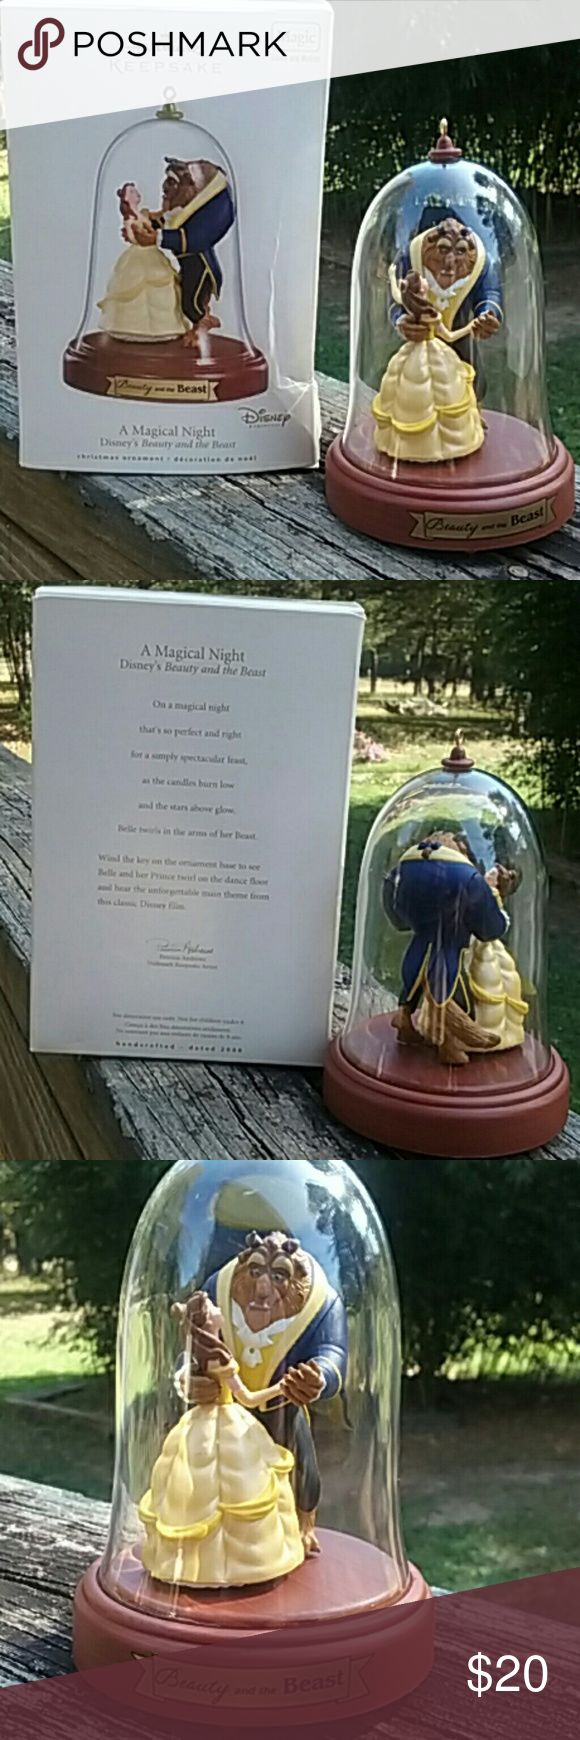 Hallmark Keepsake Beauty and the Beast Magic sound and motion .A musical night Disney's Beauty and the Beast Christmas ornament.New in the box it has never been put on the tree.There is a little tear on the inside of the box where you close it at.I am firm on the price. Hallmark Keepsake Other